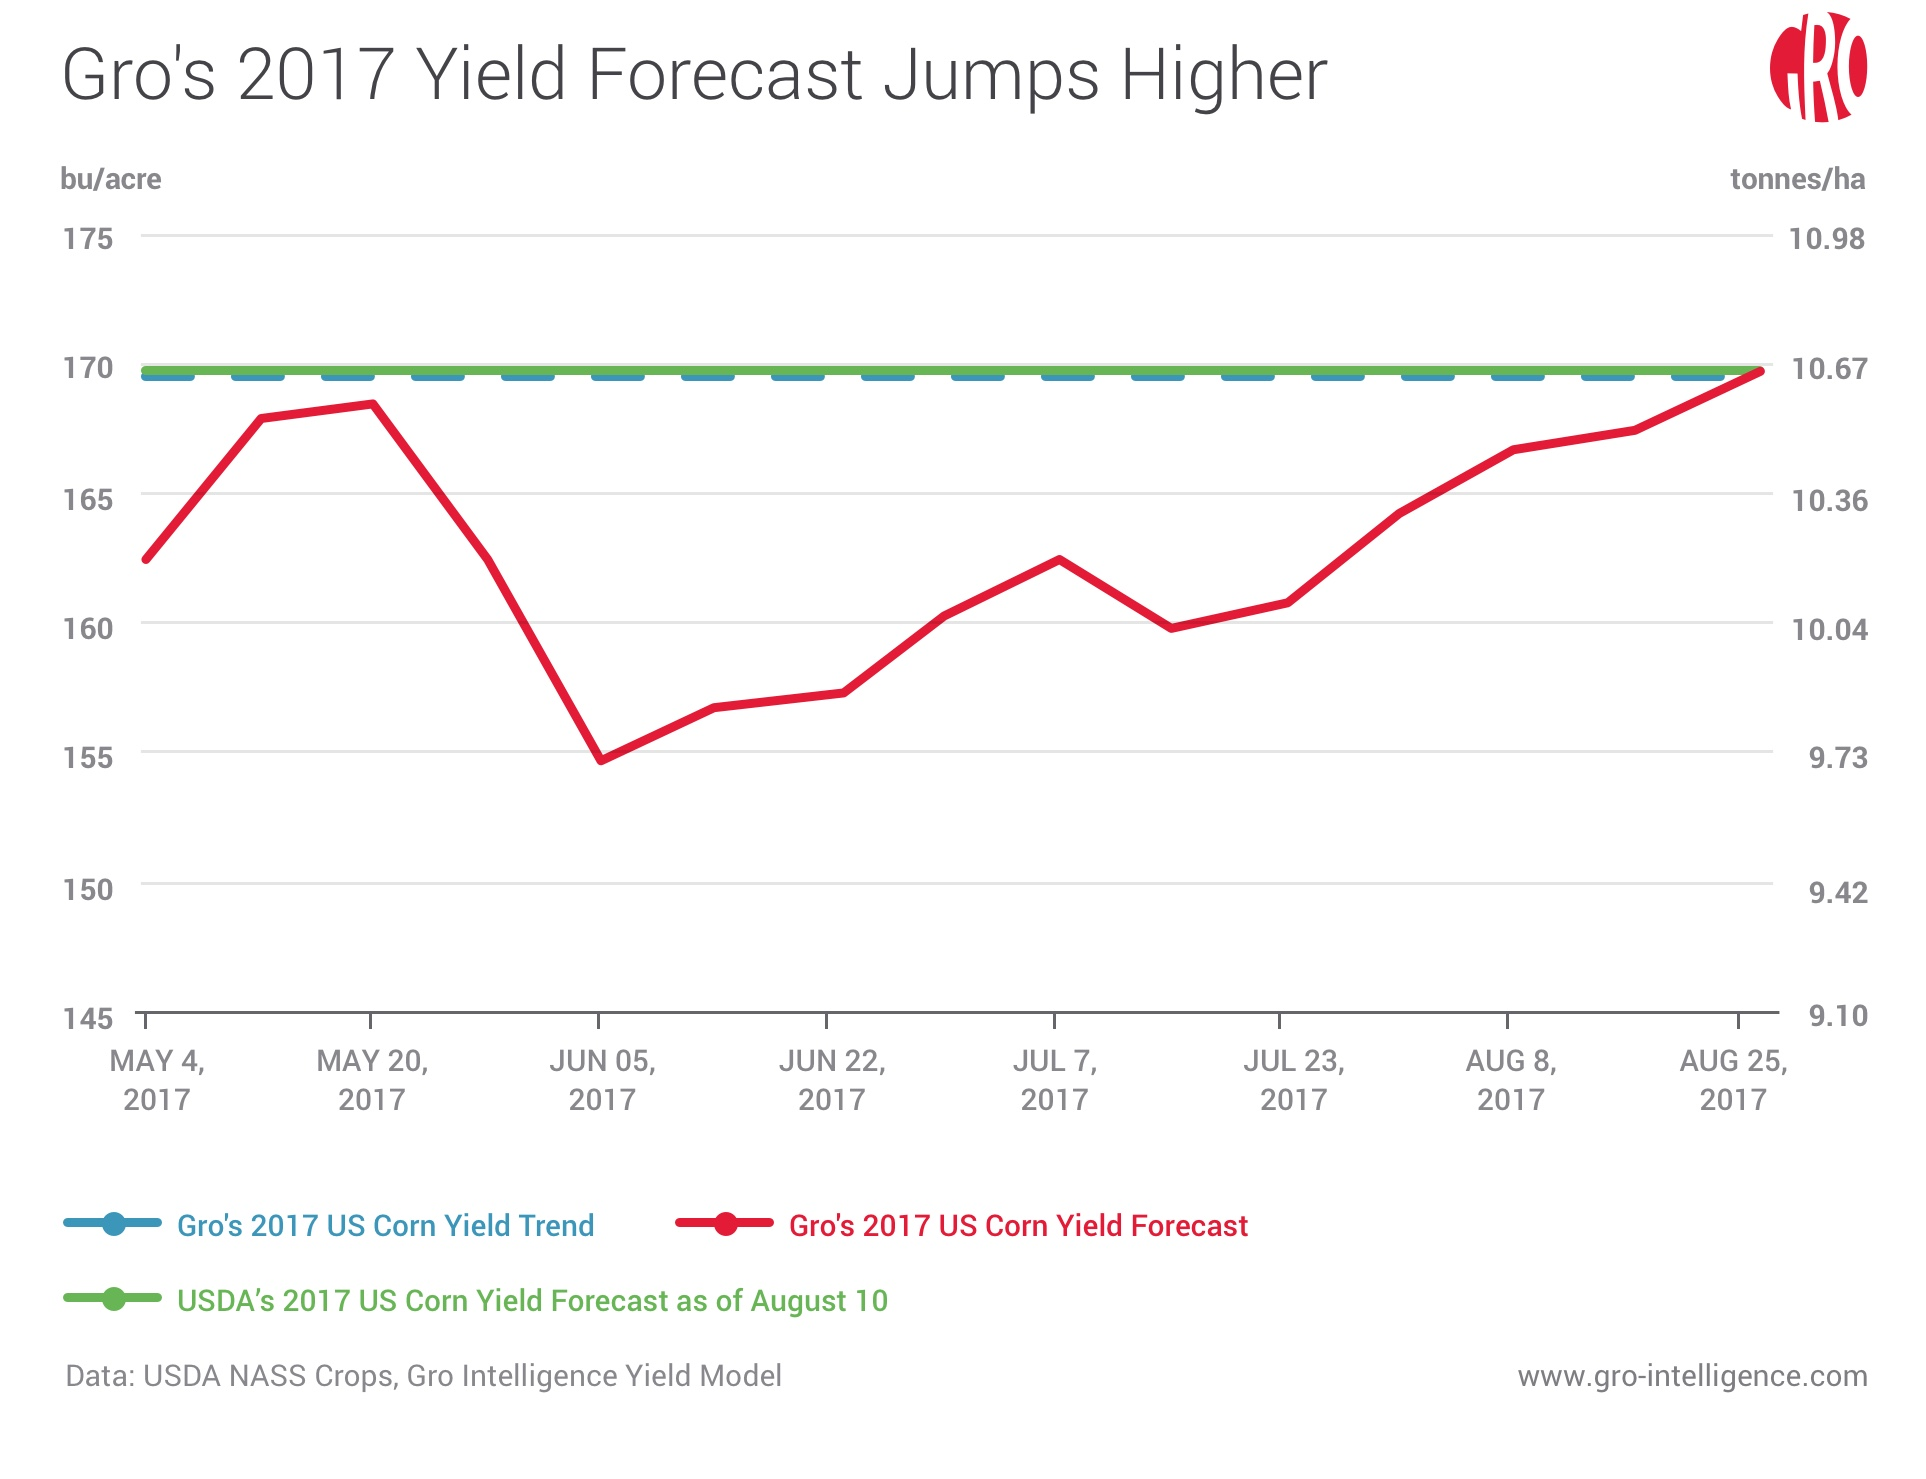 Gro's 2017 Yield Forecast Jumps Higher